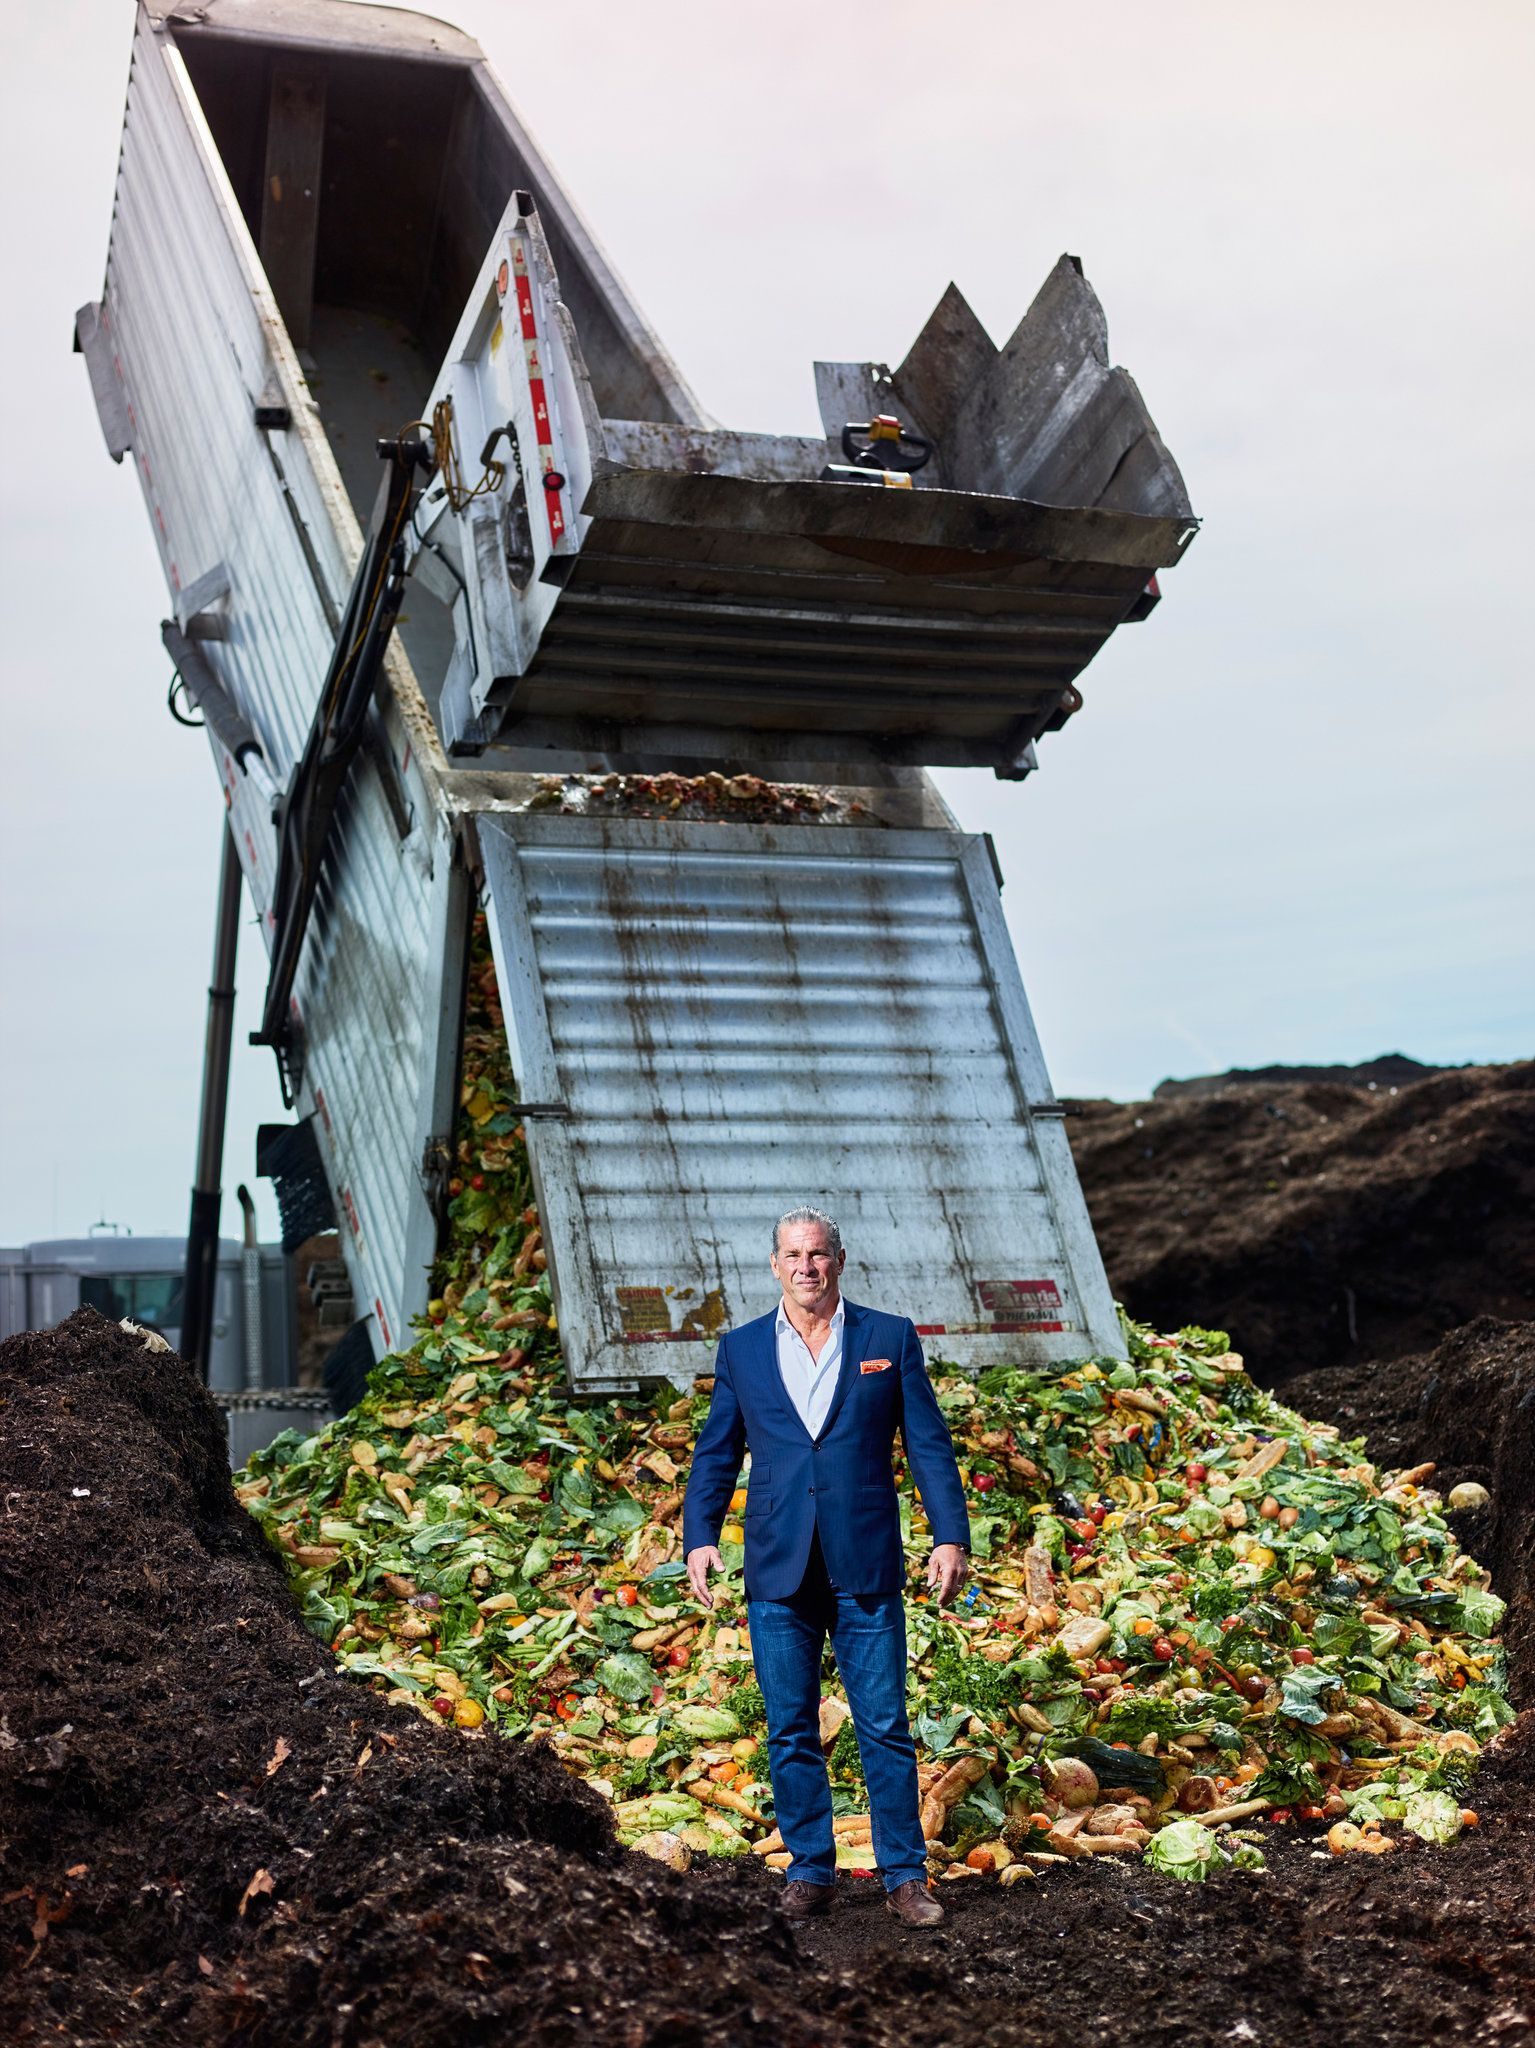 Charles Vigliotti | New York Times image - standing in front of machine dumping compost